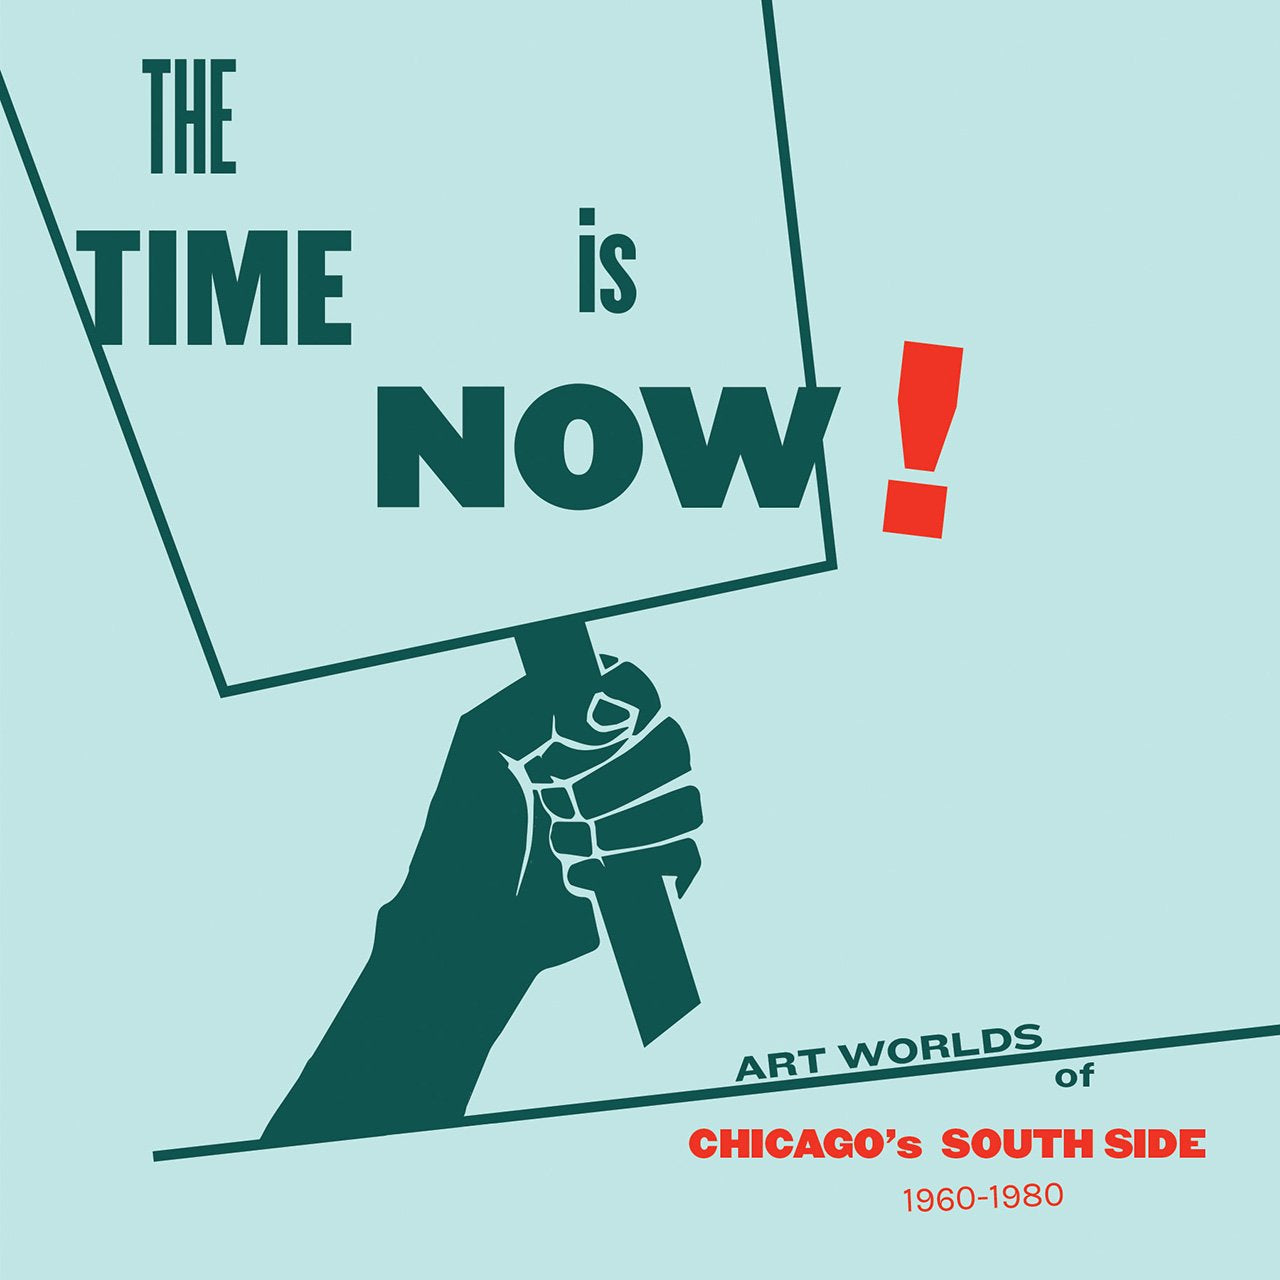 The Time is Now! Art Worlds of Chicago's South Side, 1960–1980 - Book at Kavi Gupta Editions